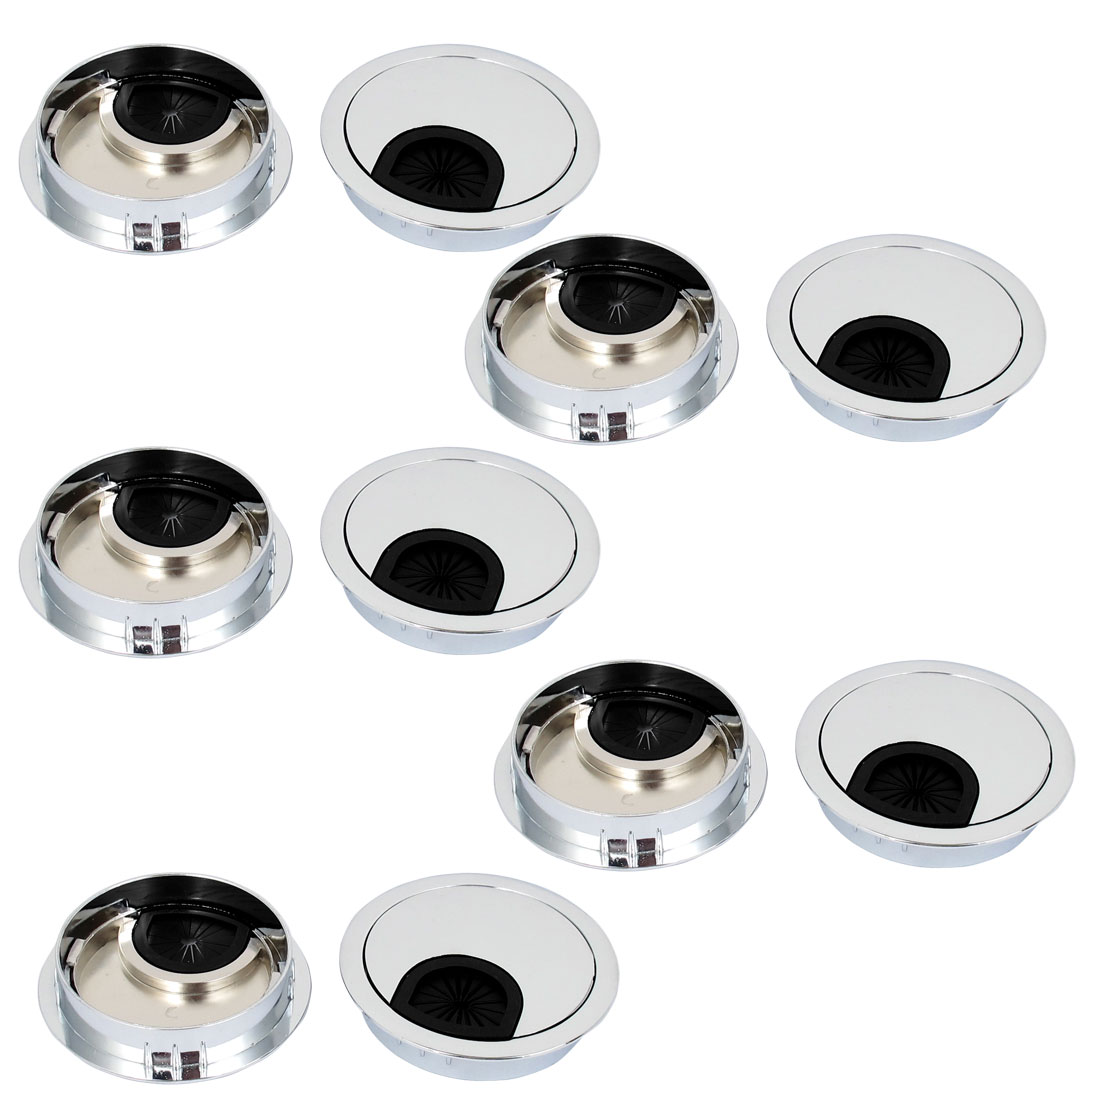 10 Pcs 58mm Alloy Grommet Computer Office Desk Table Counter Top Cord Cable Wire